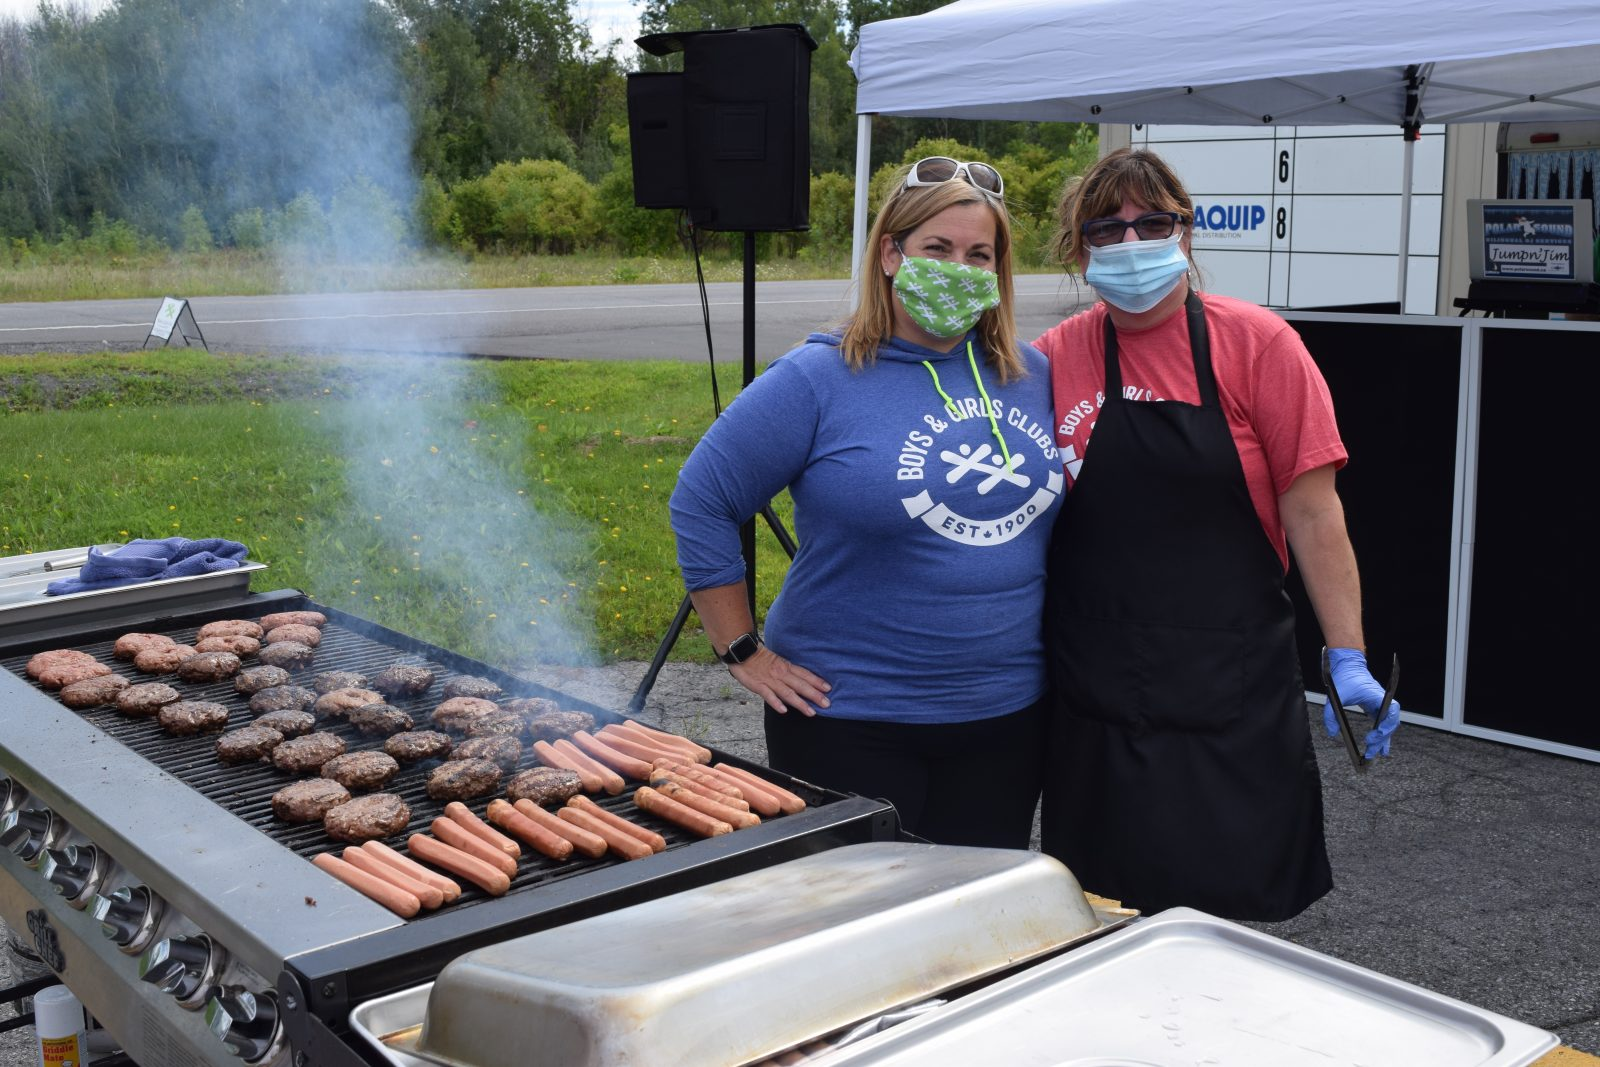 Sizzlin support for Boys and Girls Club